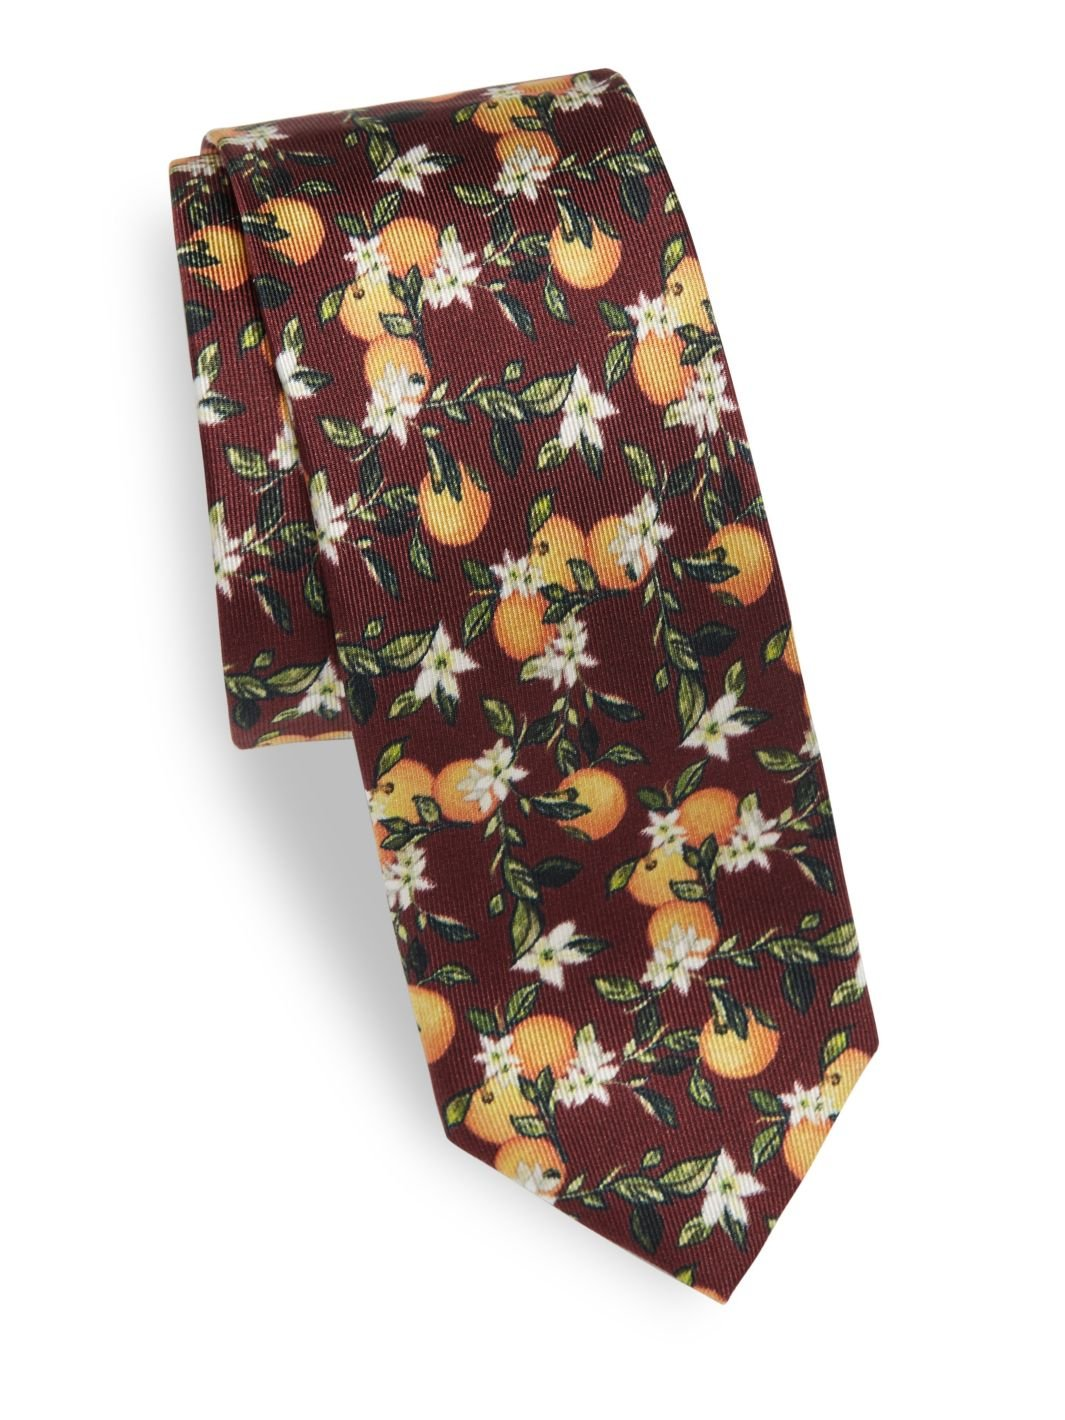 Dolce & Gabbana Men's Orange Print Italian Silk Tie, OS, Wine